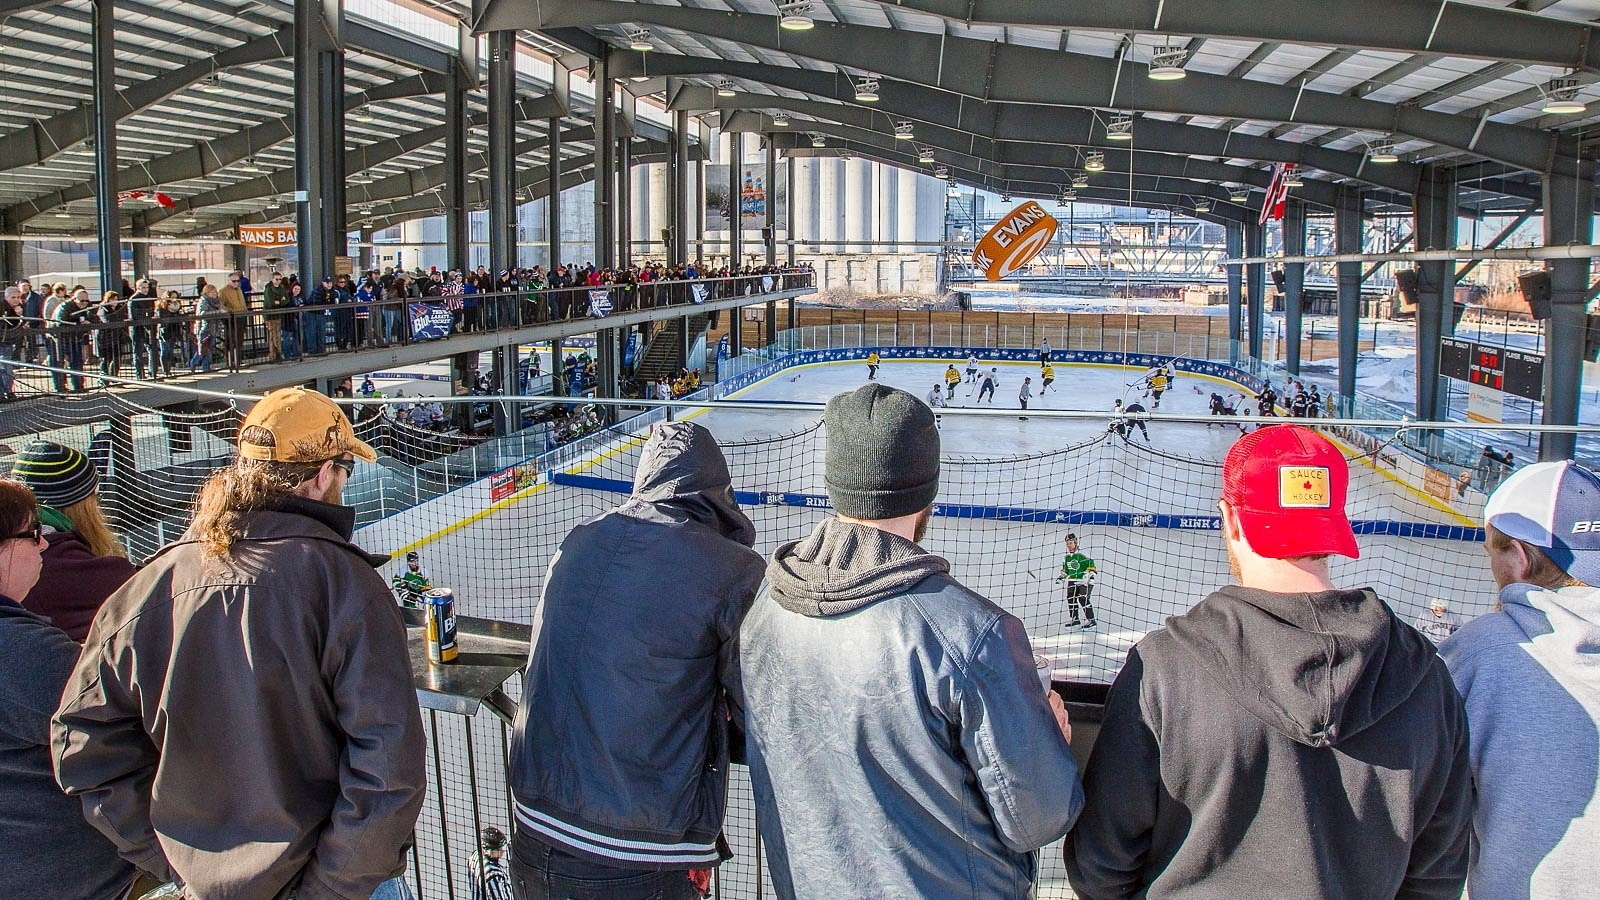 Fans gaze over the ledge at Buffalo RiverWorks to check out the Labatt Blue Pond Hockey Tournament in 2016. (Don Nieman/Special to The News)